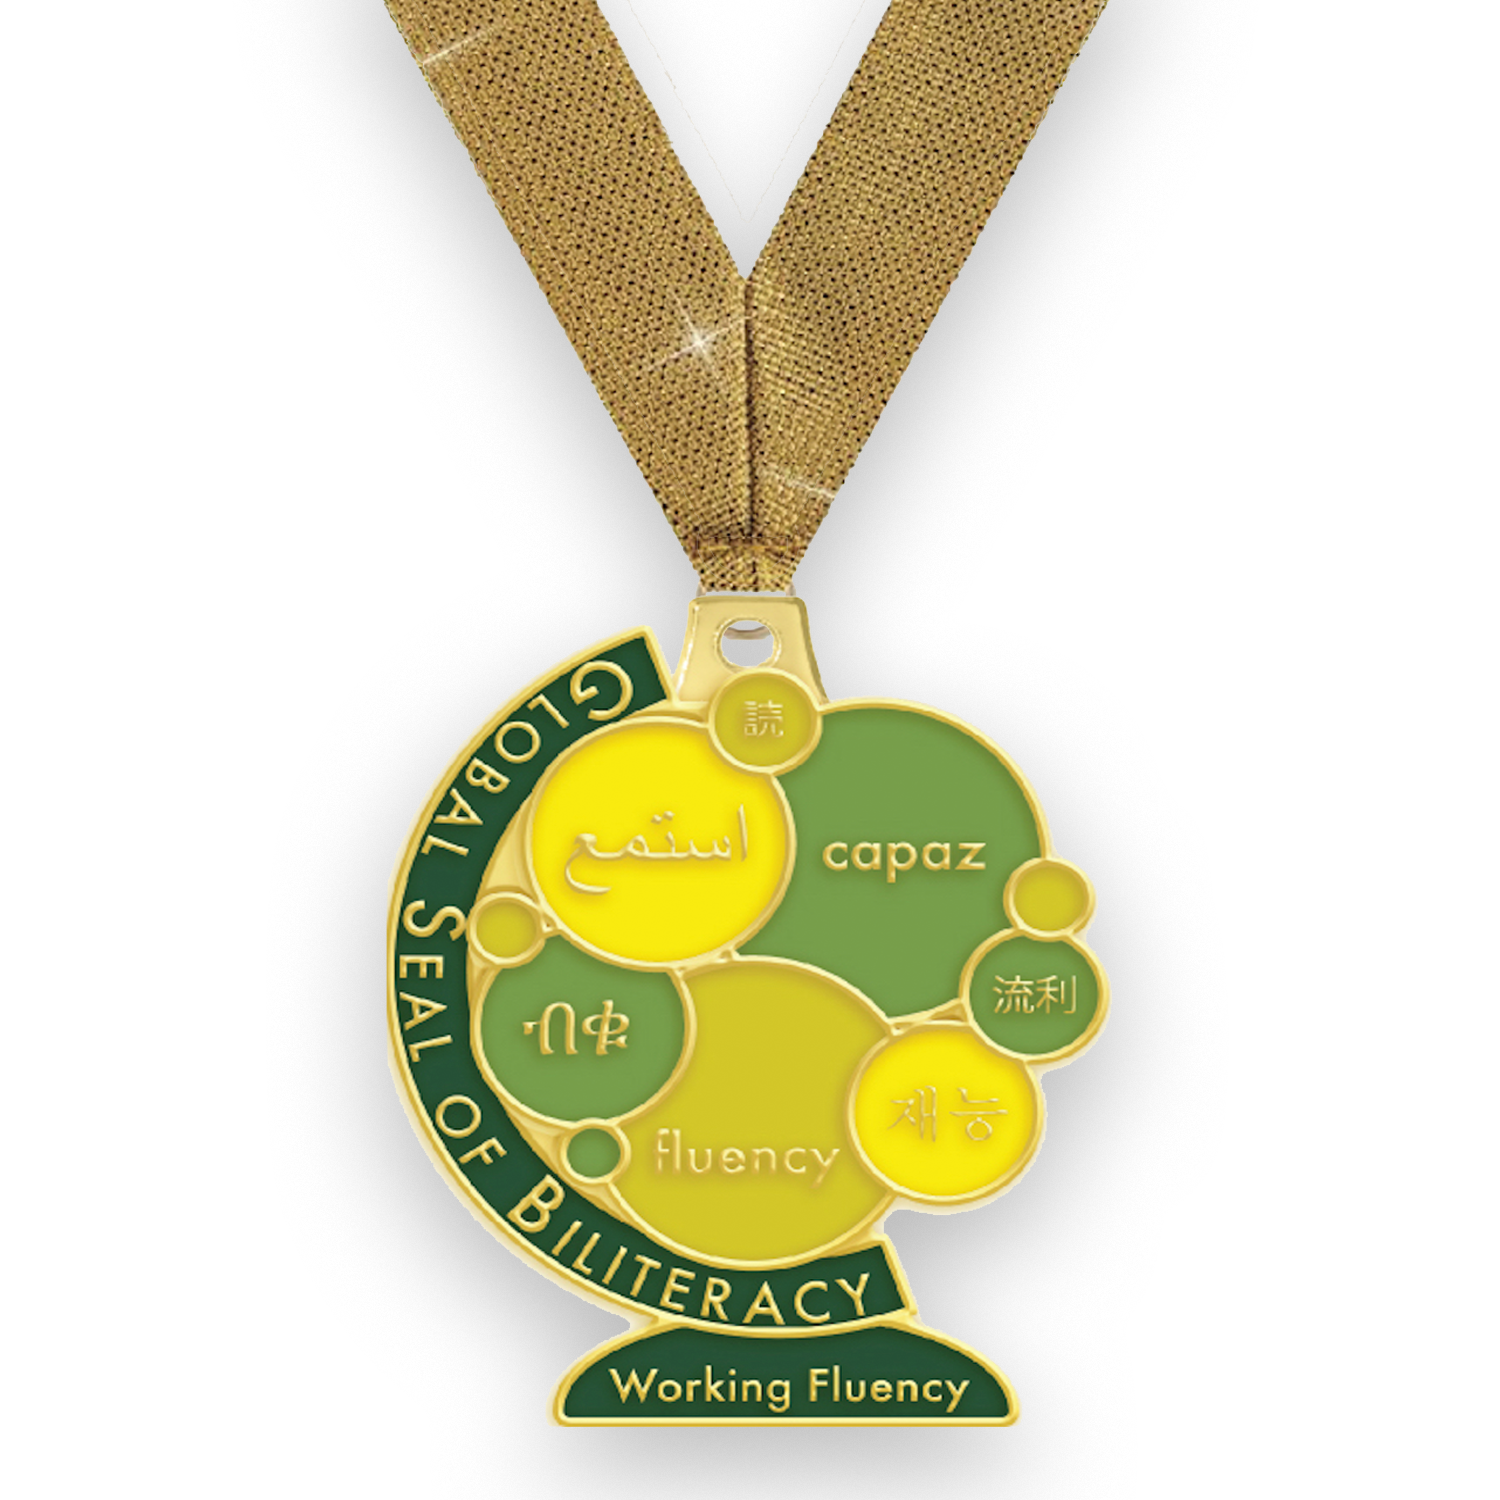 Add some excitement to your Global Seal of Biliteracy award presentations. These high-quality, die-cast enameled medals are available to serve as a unique recognition for anyone who qualified for the Global Seal of Biliteracy with Working Fluency. They can be given together with our FREE Global Seal of Biliteracy certificate at a special recognition event and worn at graduation ceremonies to further honor your students.  The Working Fluency medal has a width of 1.75 inches, a length of 2 inches and comes with a gold neck strap.    *Medals can only be ordered for qualifying Global Seal certificate awardees and in the same quantities. After awardees have been processed you will receive a link to purchase.